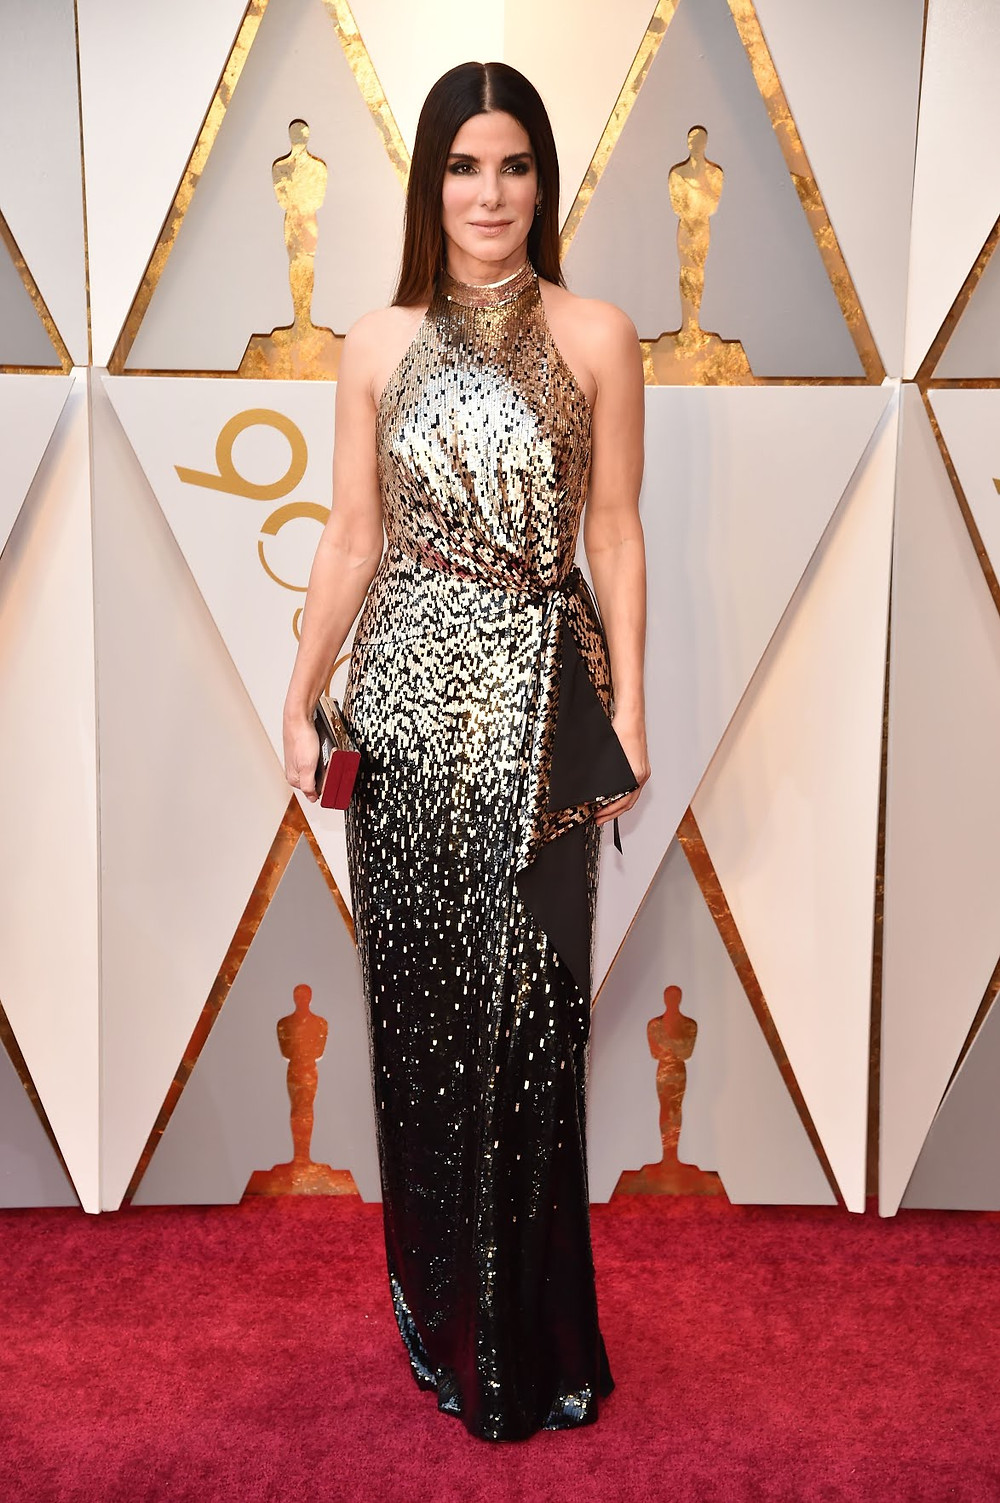 Sandra Bullock wearing Louis Vuitton Oscars 2018